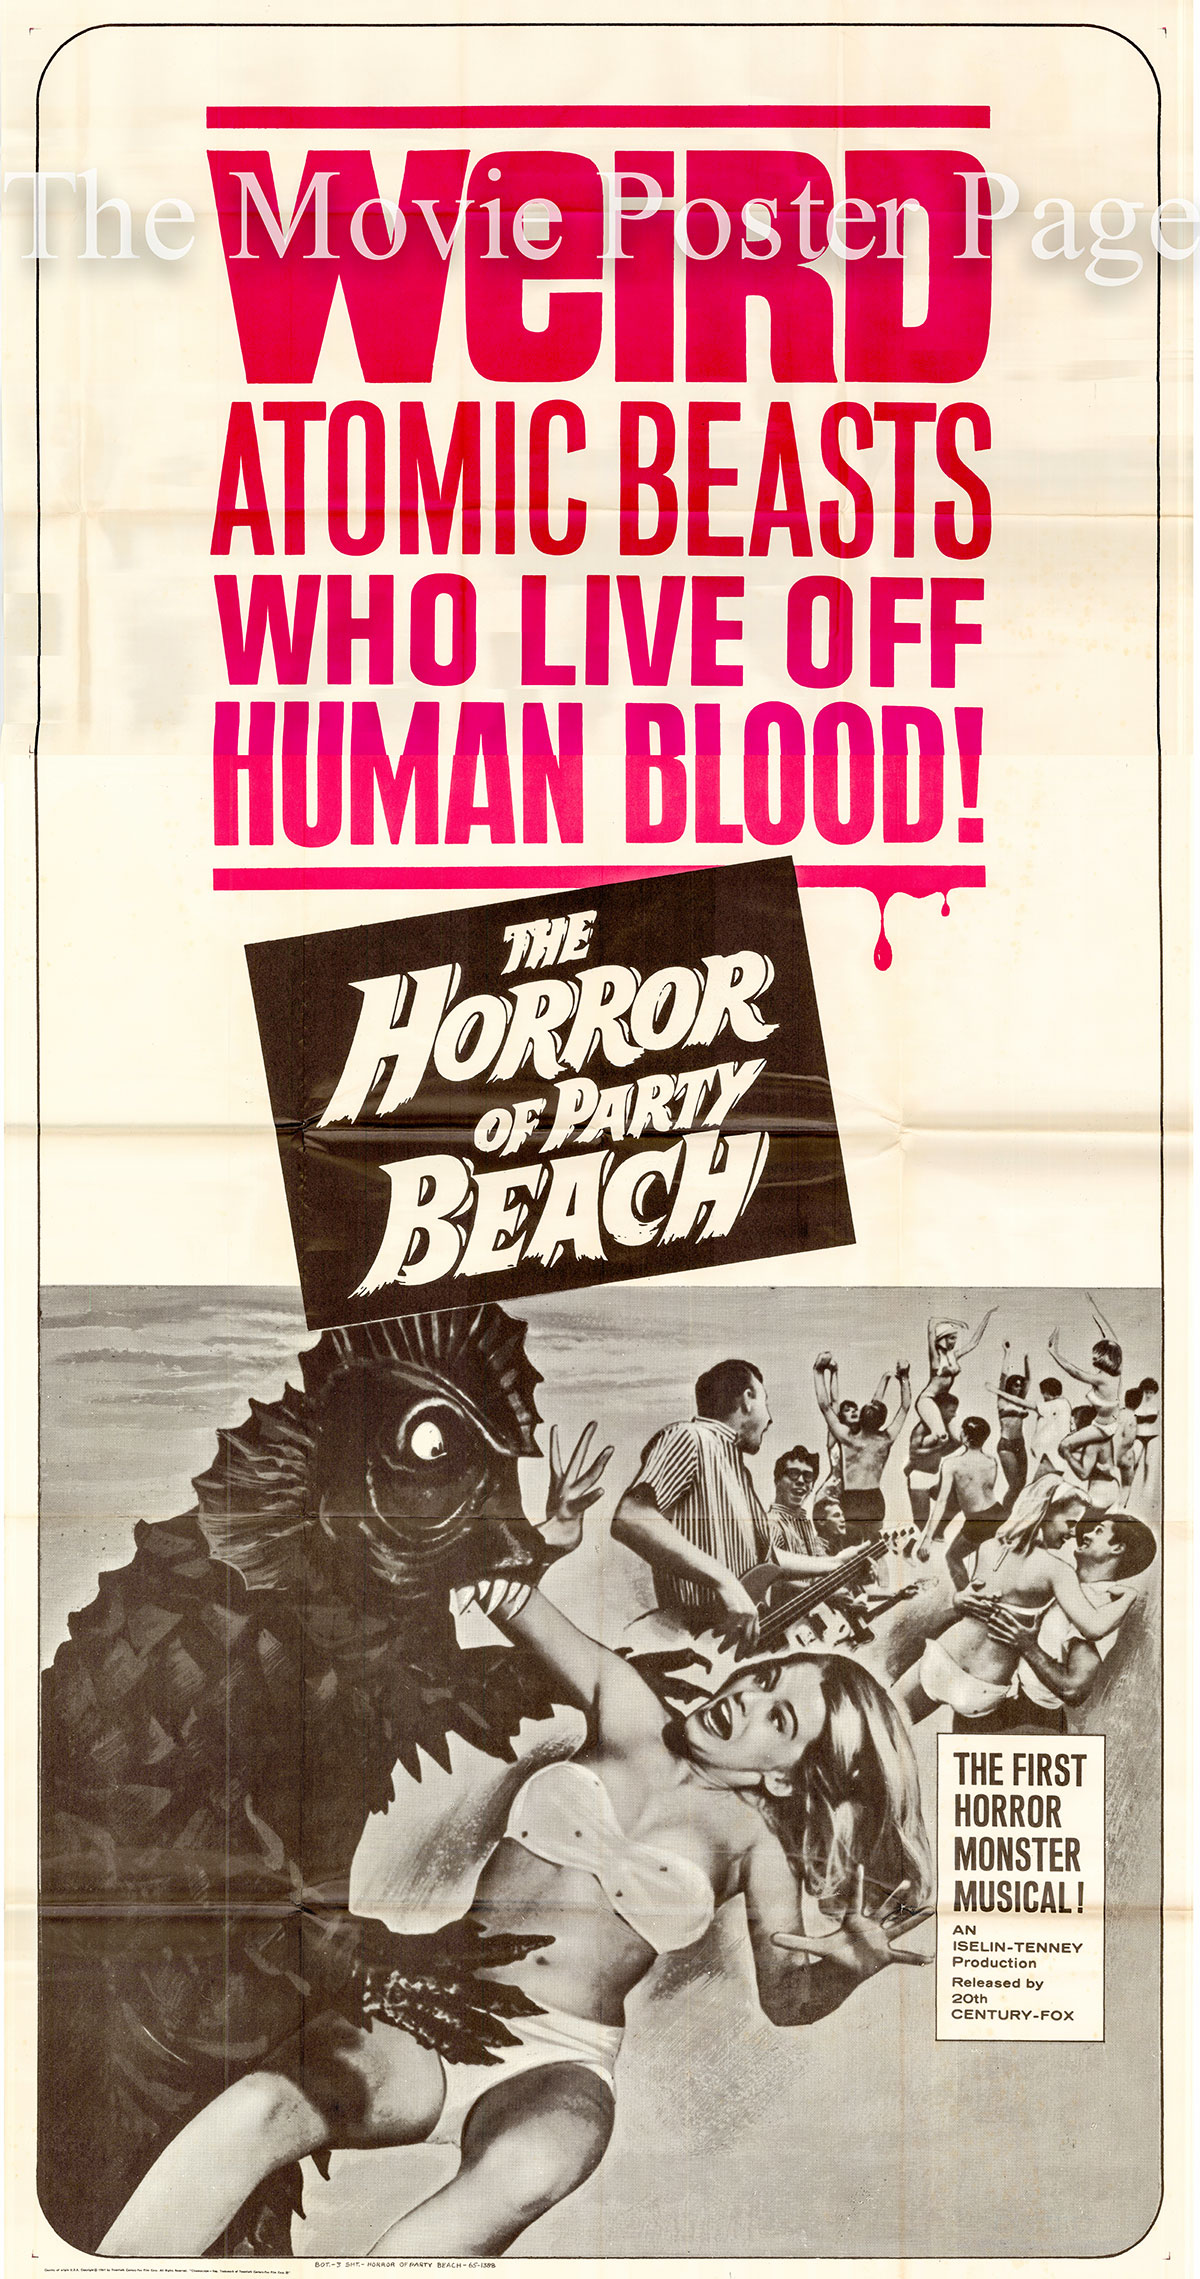 Pictured is a US three-sheet poster for the 1964 Del Tenney film The Horror of Party Beach starring John Scott as Hank Green.